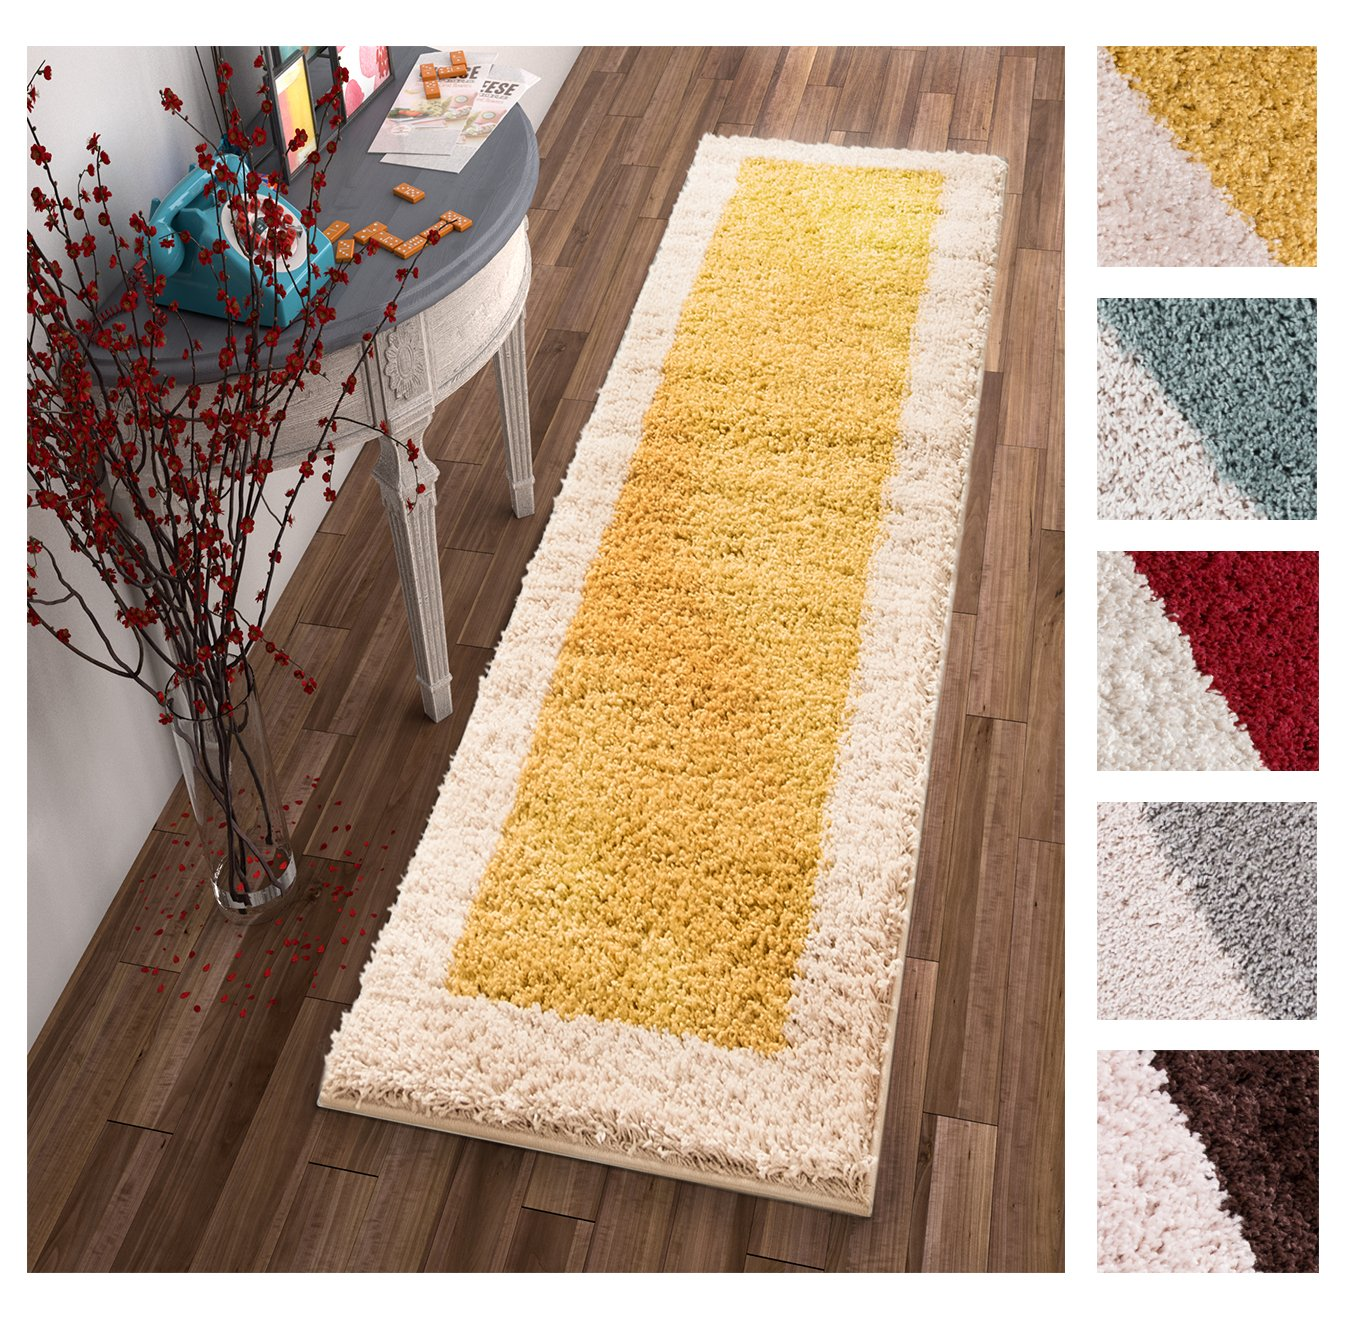 """Porta Border Modern Geometric Shag 2x7 (2'' x 7'3'' Runner) Area Rug Gold Beige Plush Easy Care Thick Soft Plush Living… - Thick, plush, fluffy 1"""" Pile. Lush polypropylene power loomed in Turkey. Stain resistant and fade resistant. 100% jute backing is safe for wood floors. Extremely durable and very easy to clean, made to last for years. Size: 2'' x 7'3'' Runner Plain border rug with solid color block interior. - runner-rugs, entryway-furniture-decor, entryway-laundry-room - 81xjIRkaqVL -"""